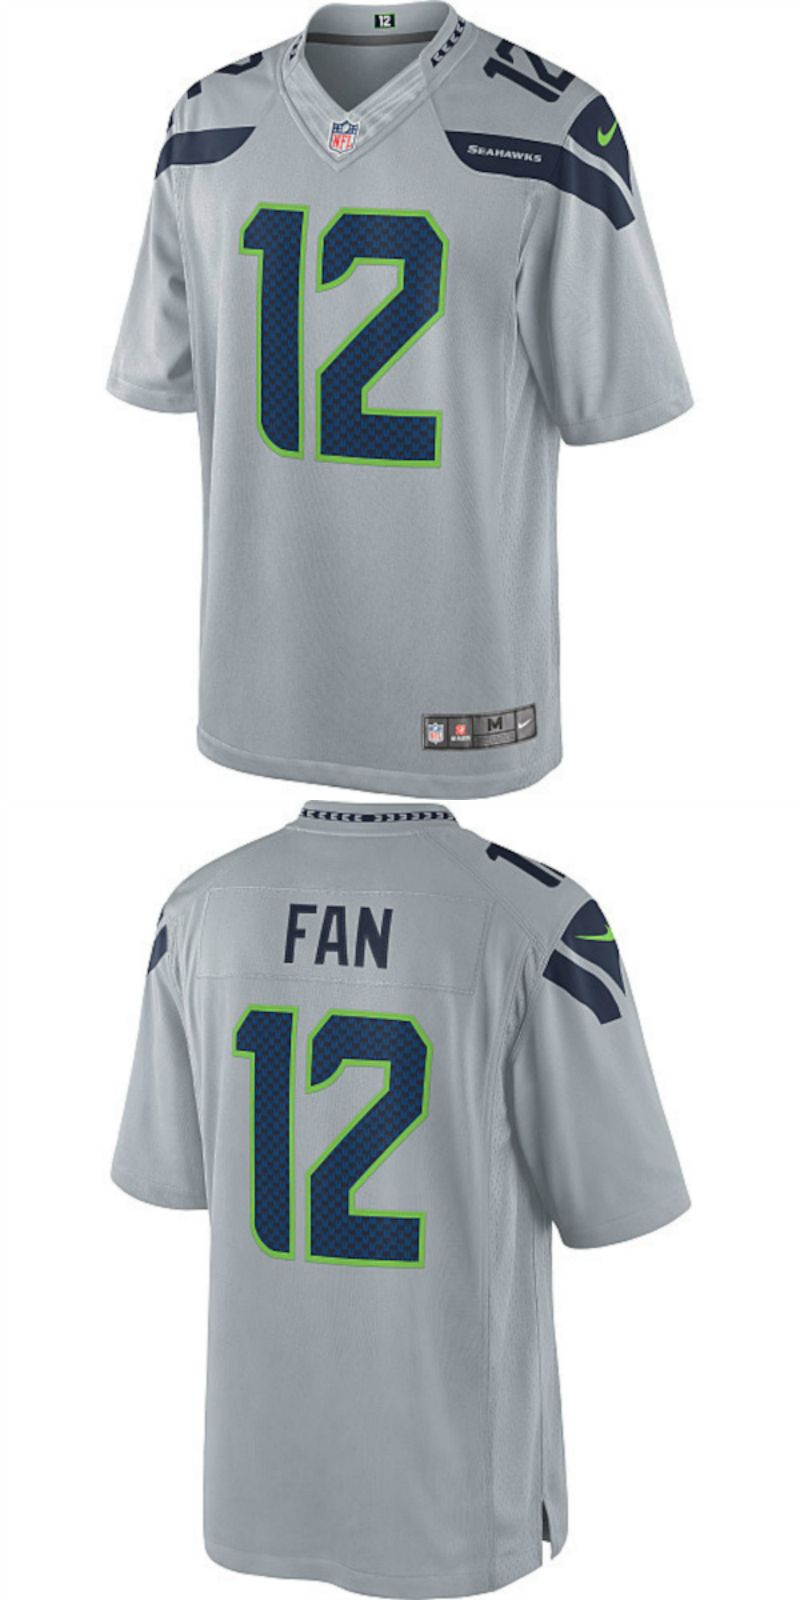 separation shoes 3394c 2d96f mens Seattle Seahawks custom football Player jersey | NFL ...